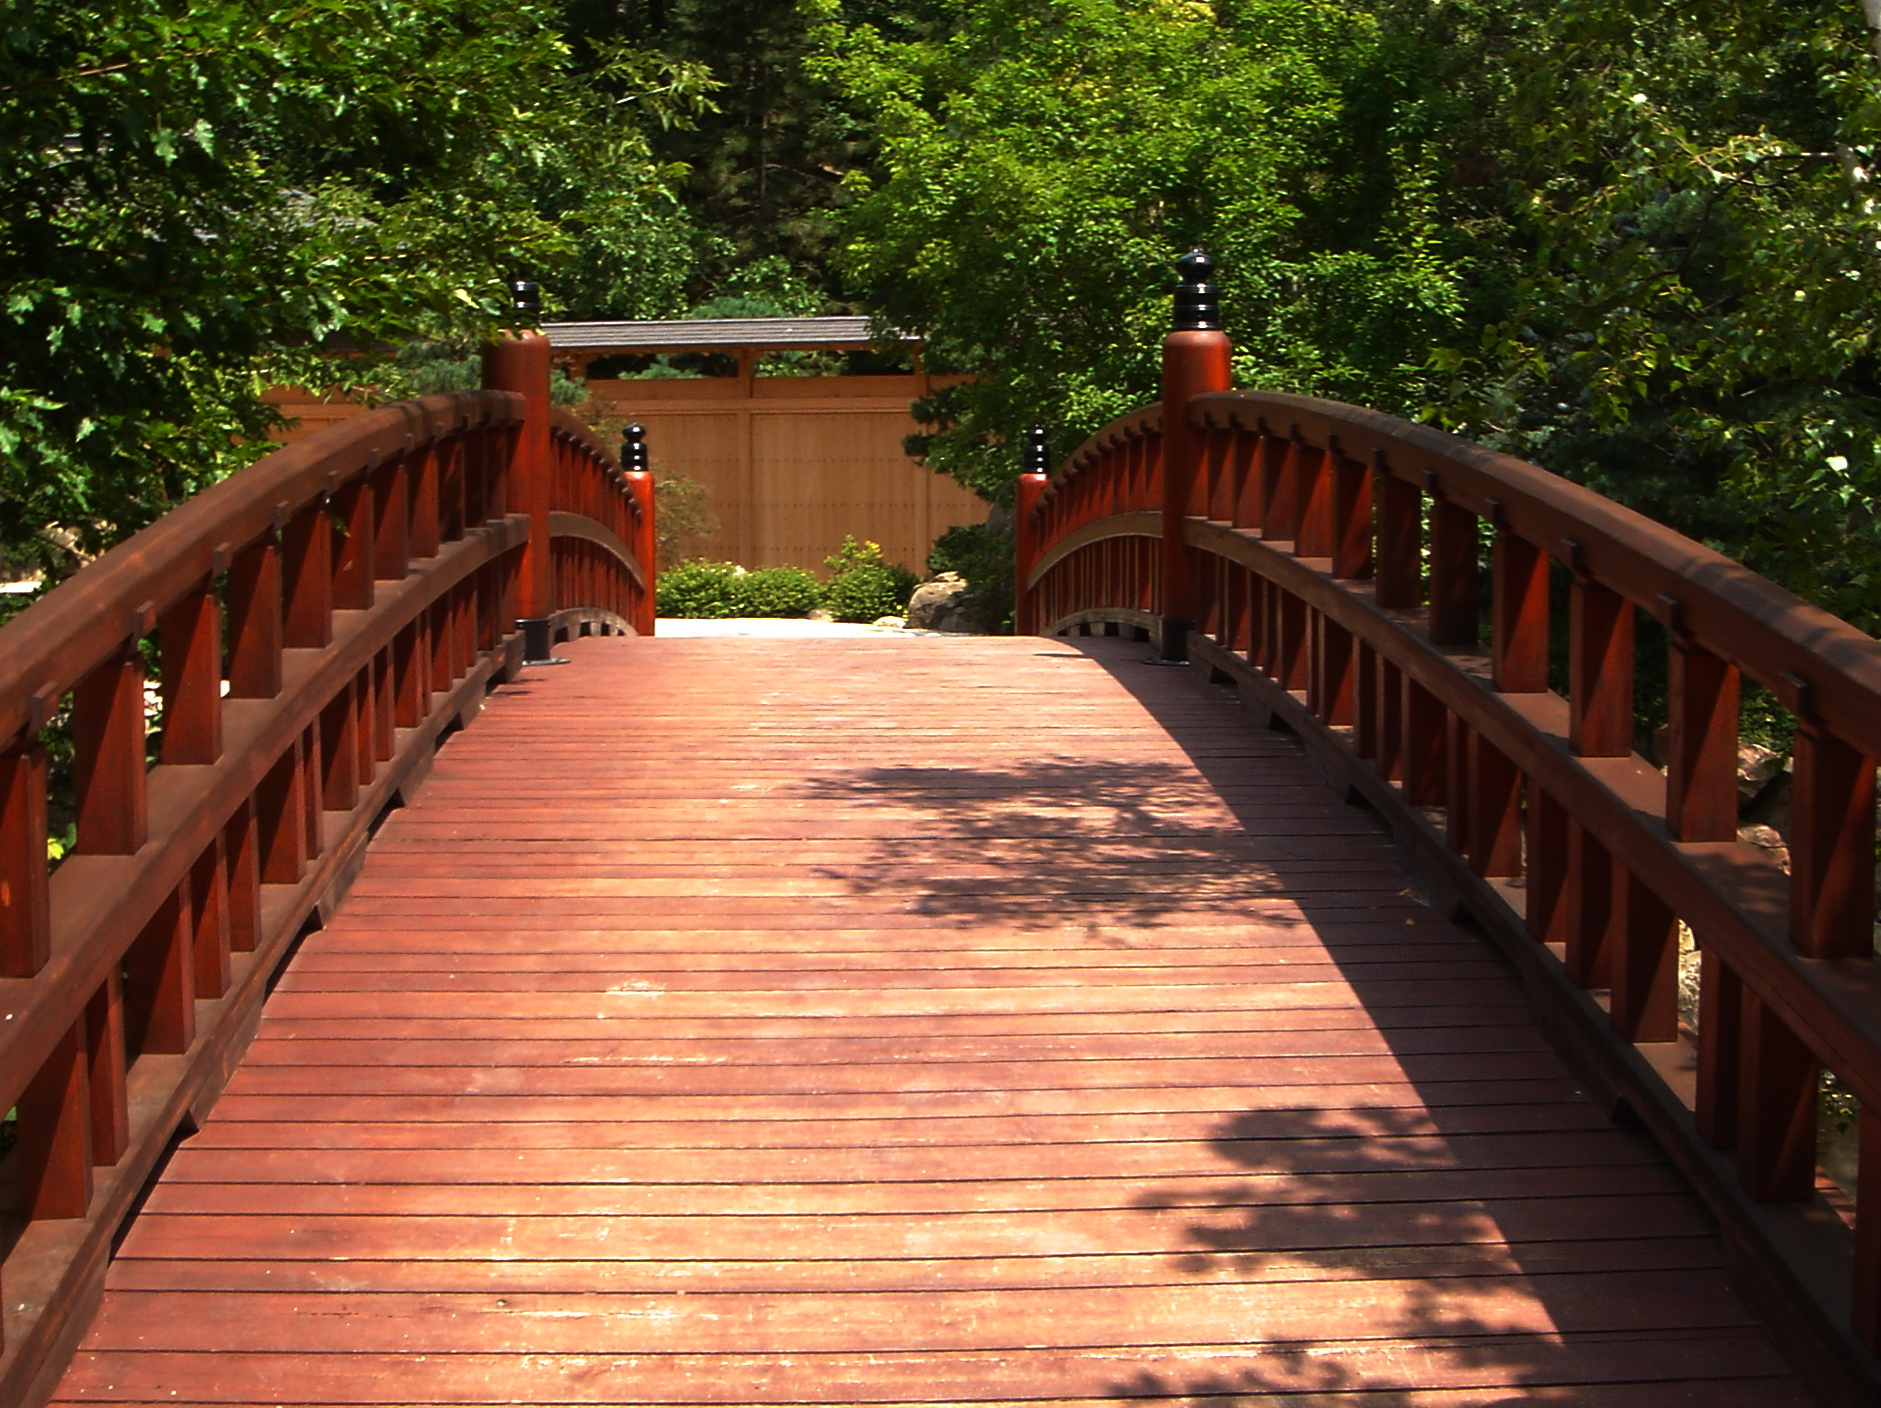 Road trip to the anderson japanese gardens in rockford il for Japanese garden bridge